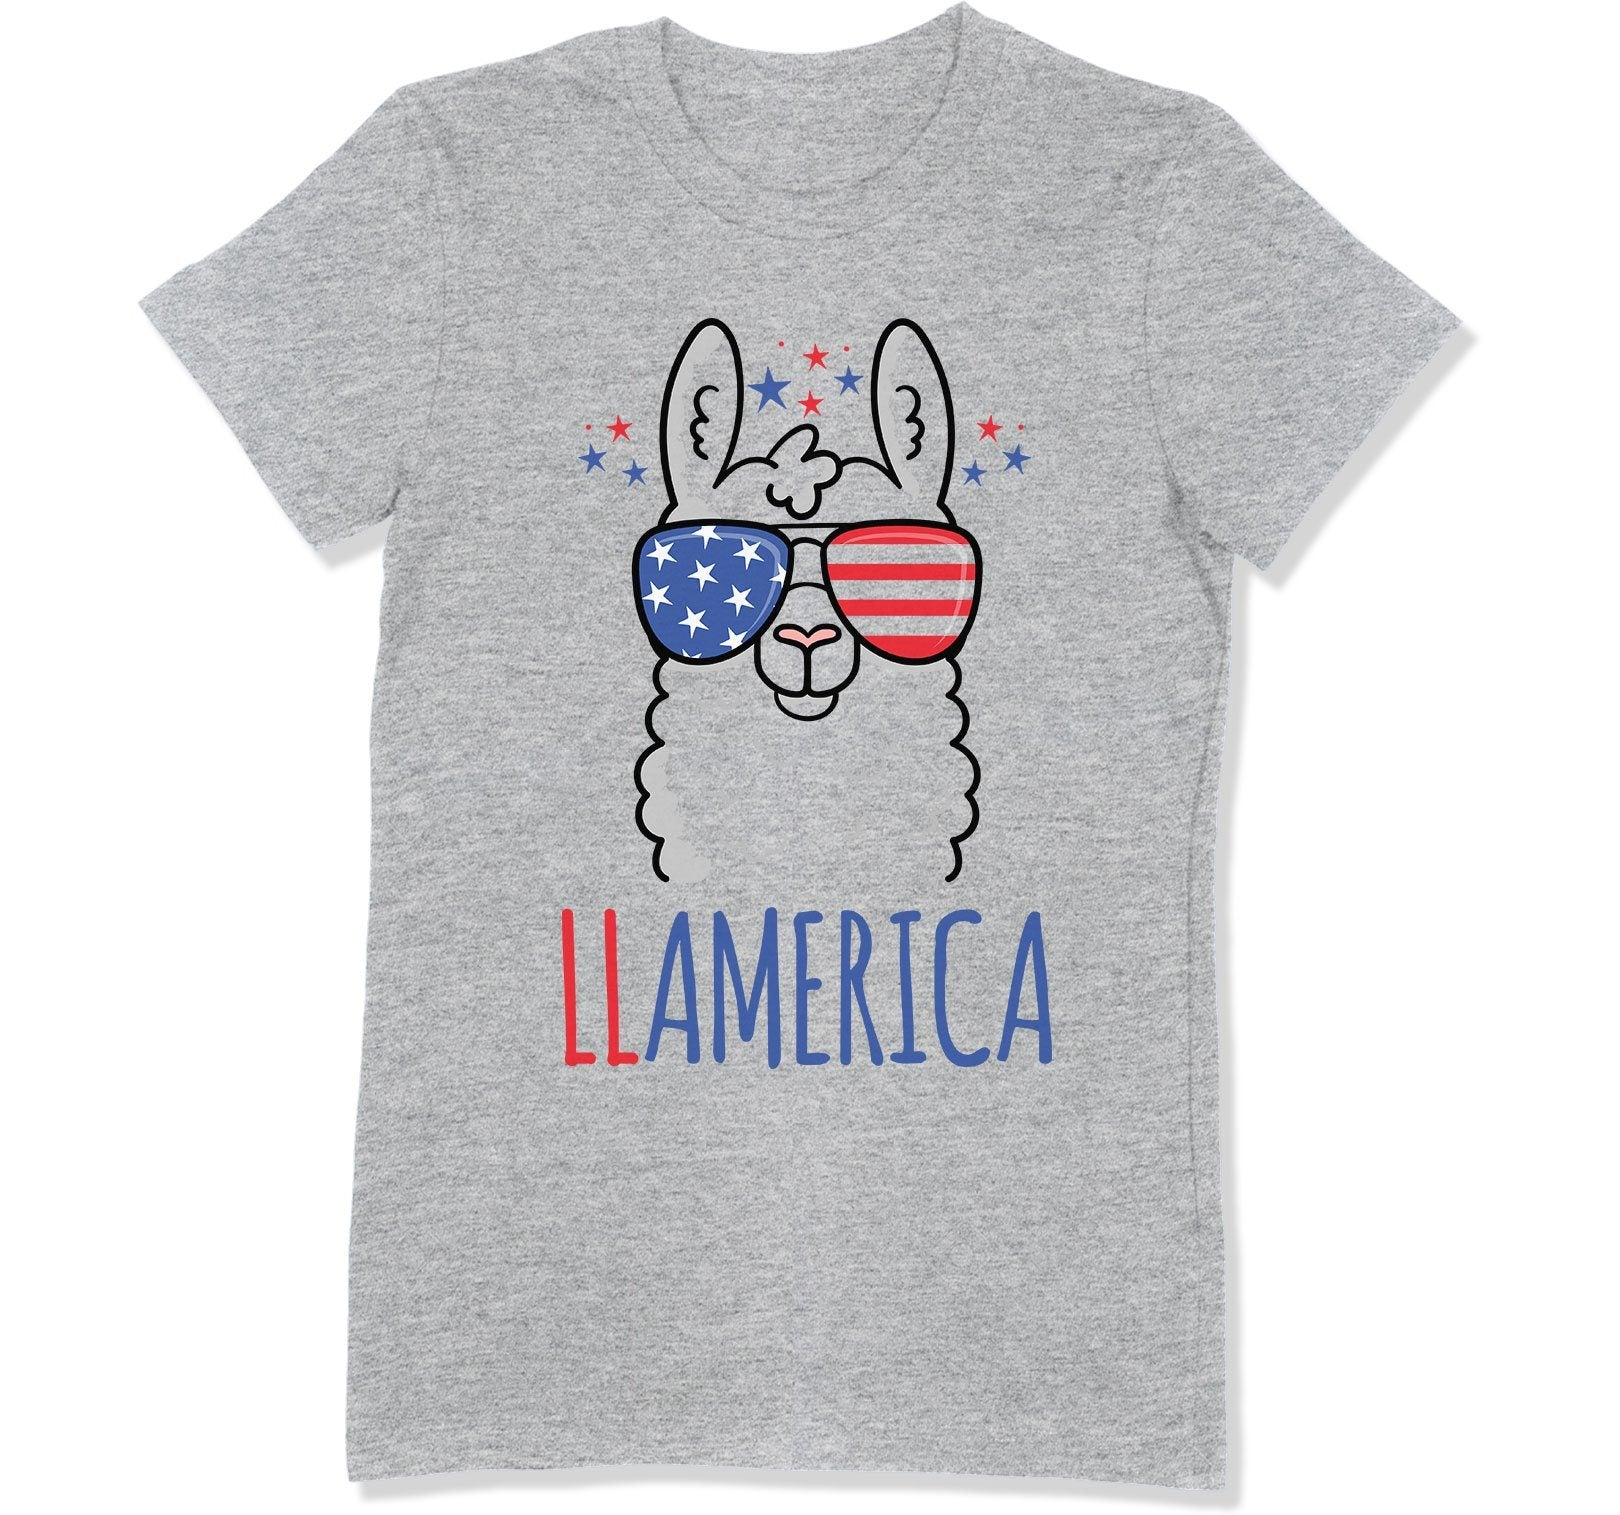 Llamerica Mom T-Shirt - FOJ-20 - GiddyBees